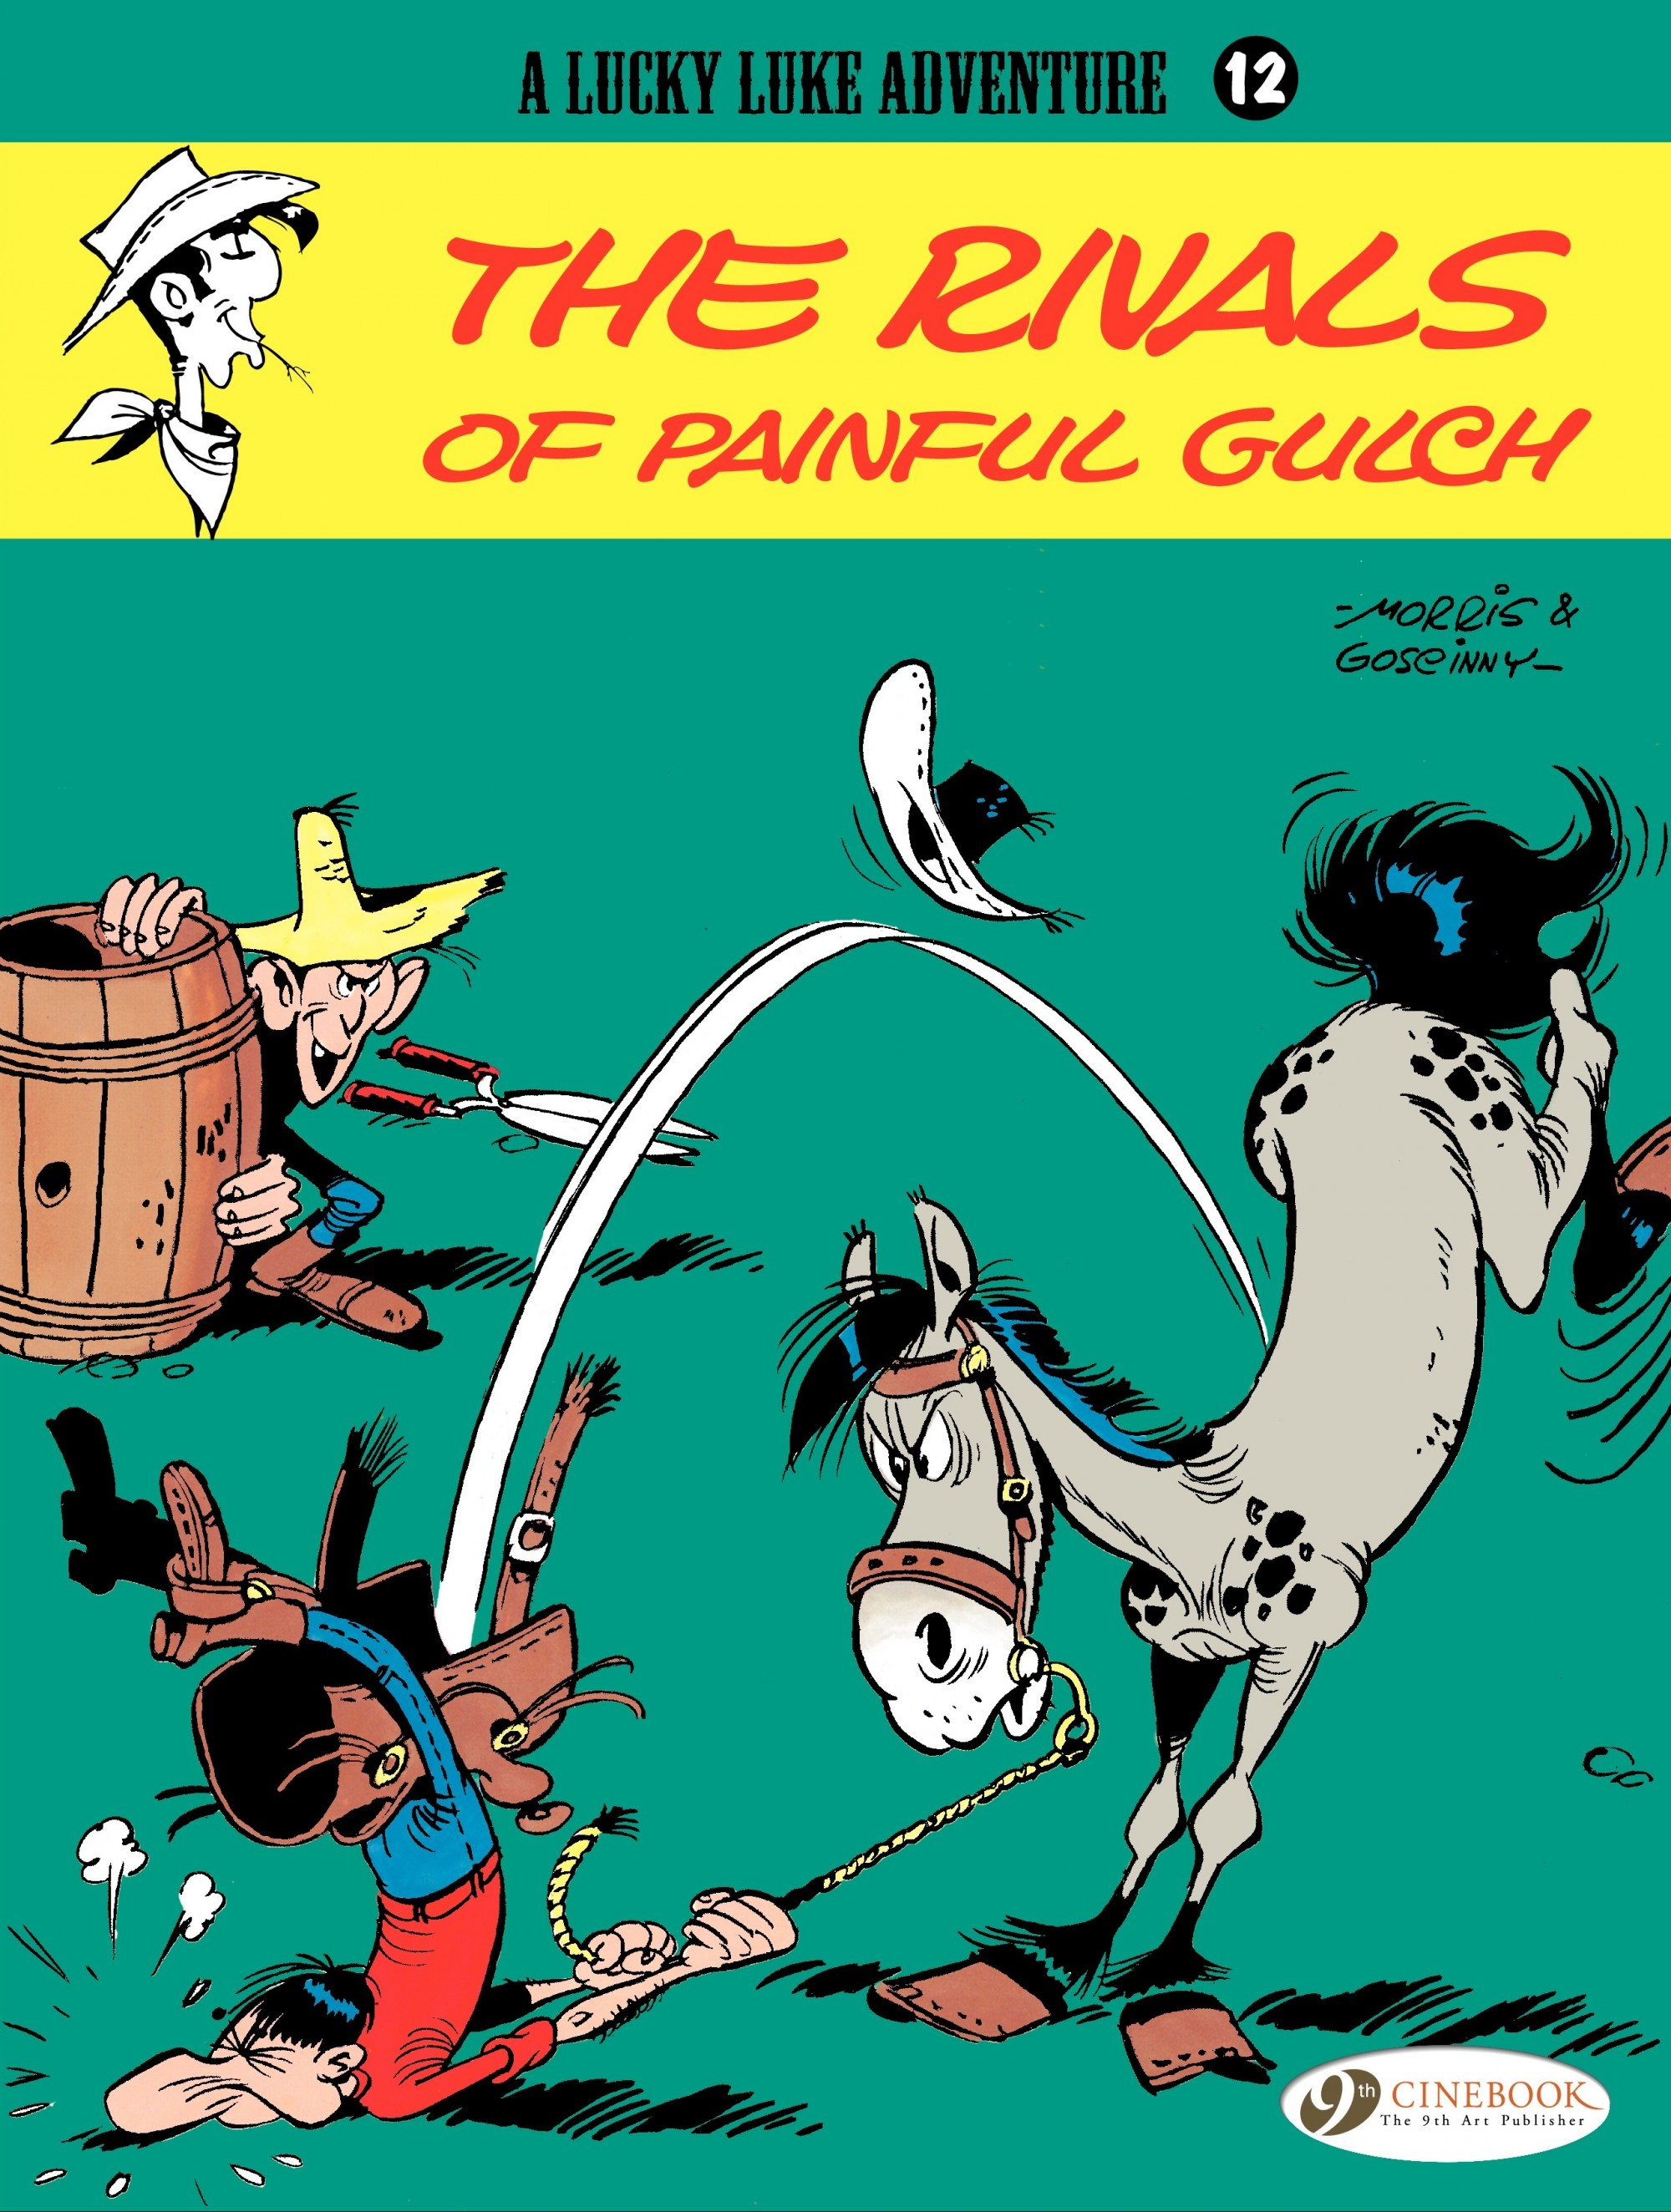 Read online A Lucky Luke Adventure comic -  Issue #12 - 1